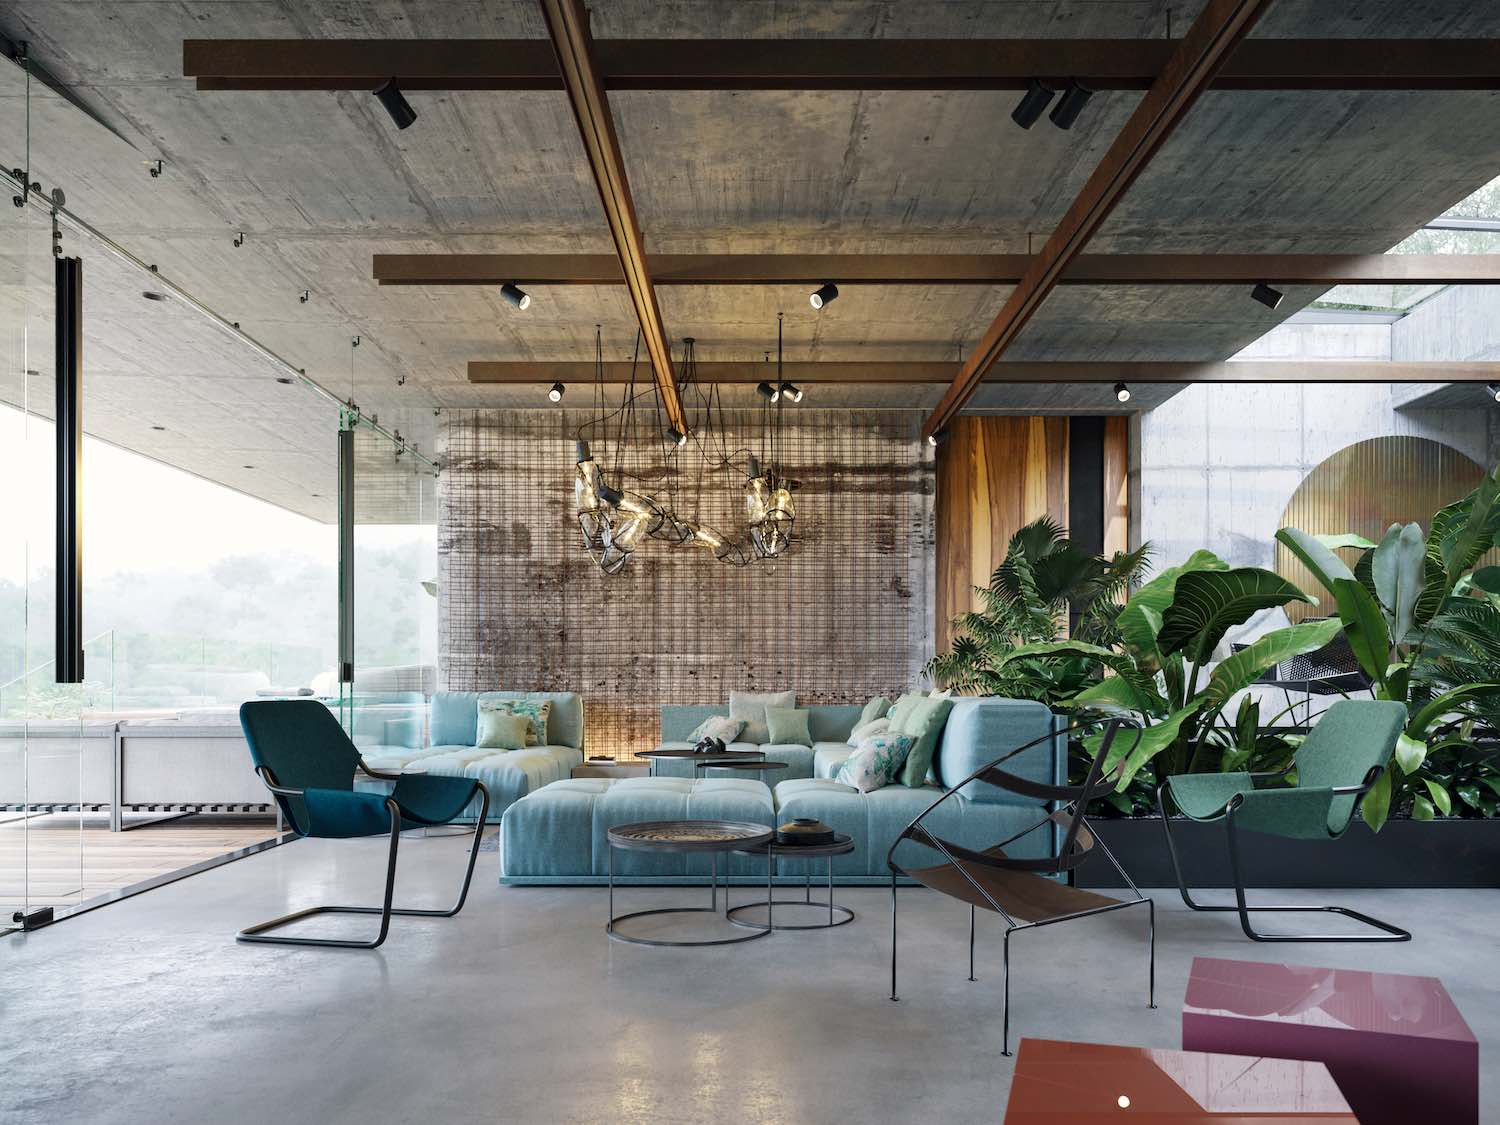 modern luxury furniture used in the interior of this villa